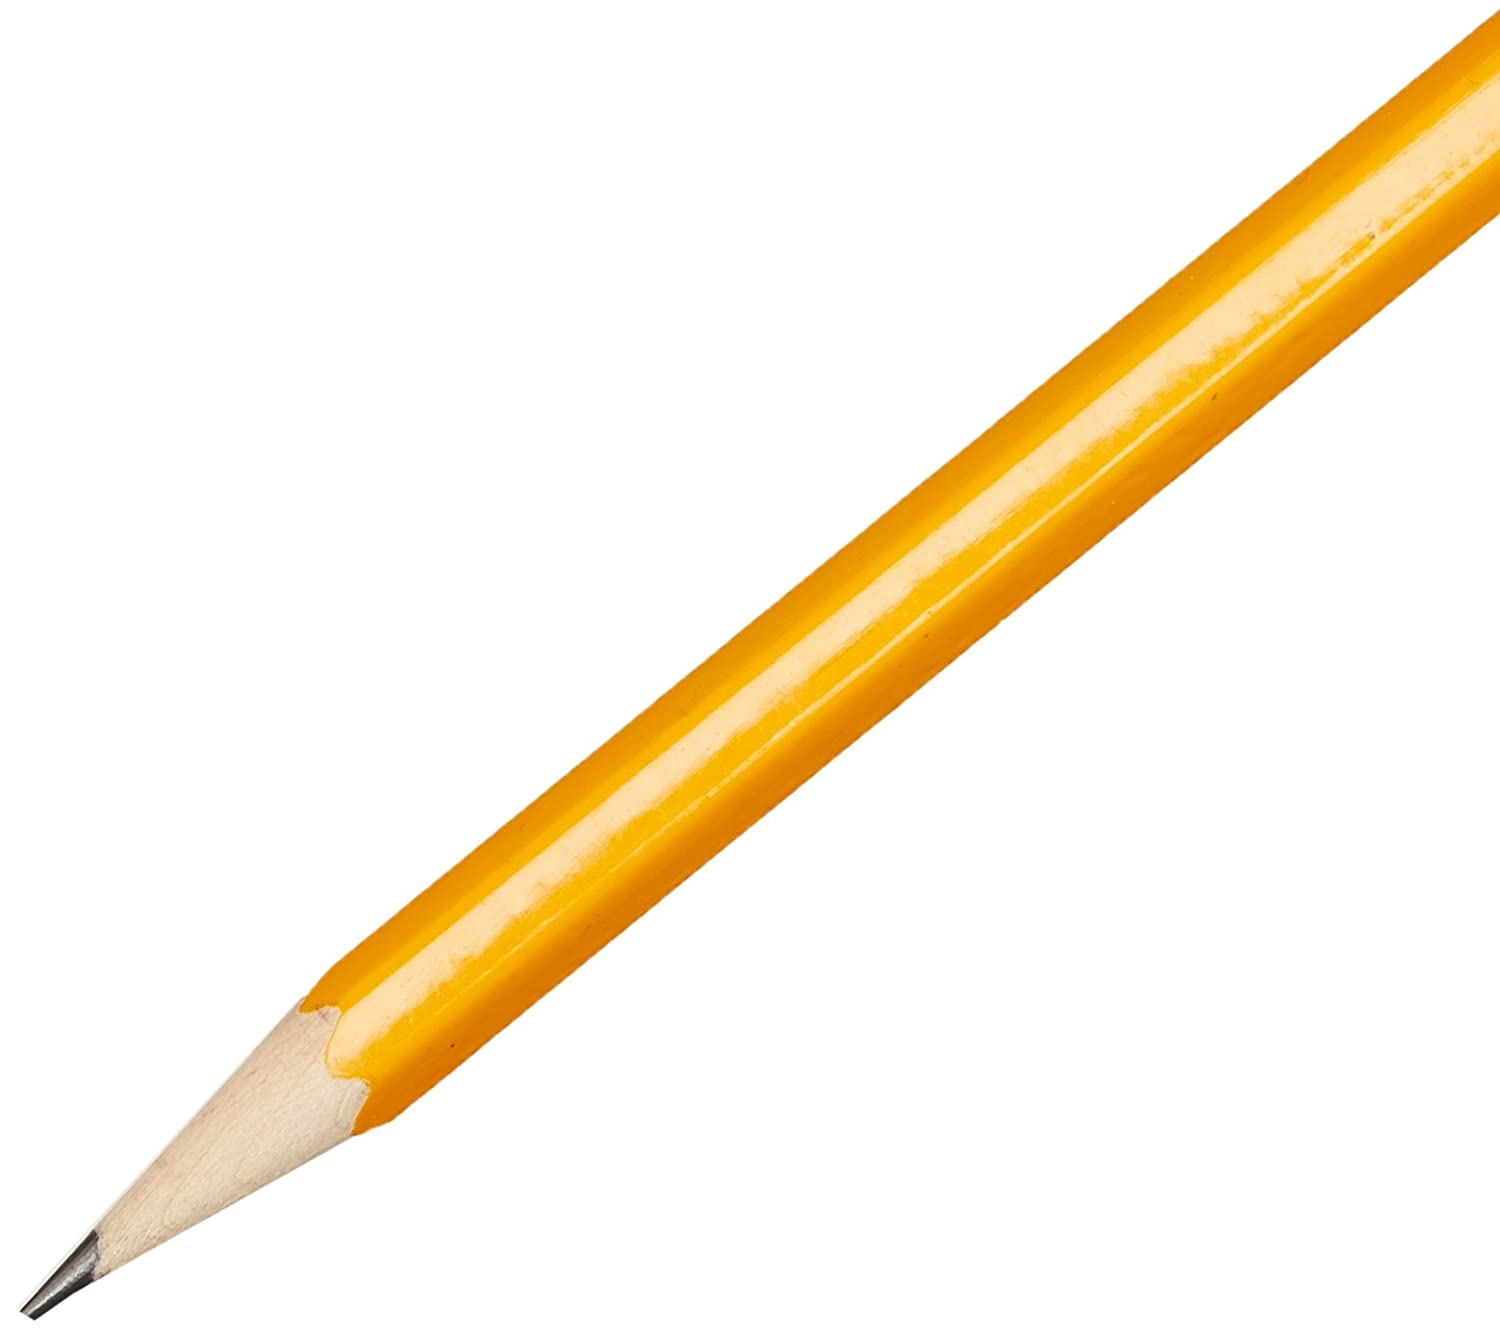 pencil pictures yeni mescale co rh yeni mescale co clipart of a pencil black and white clipart of a pencil